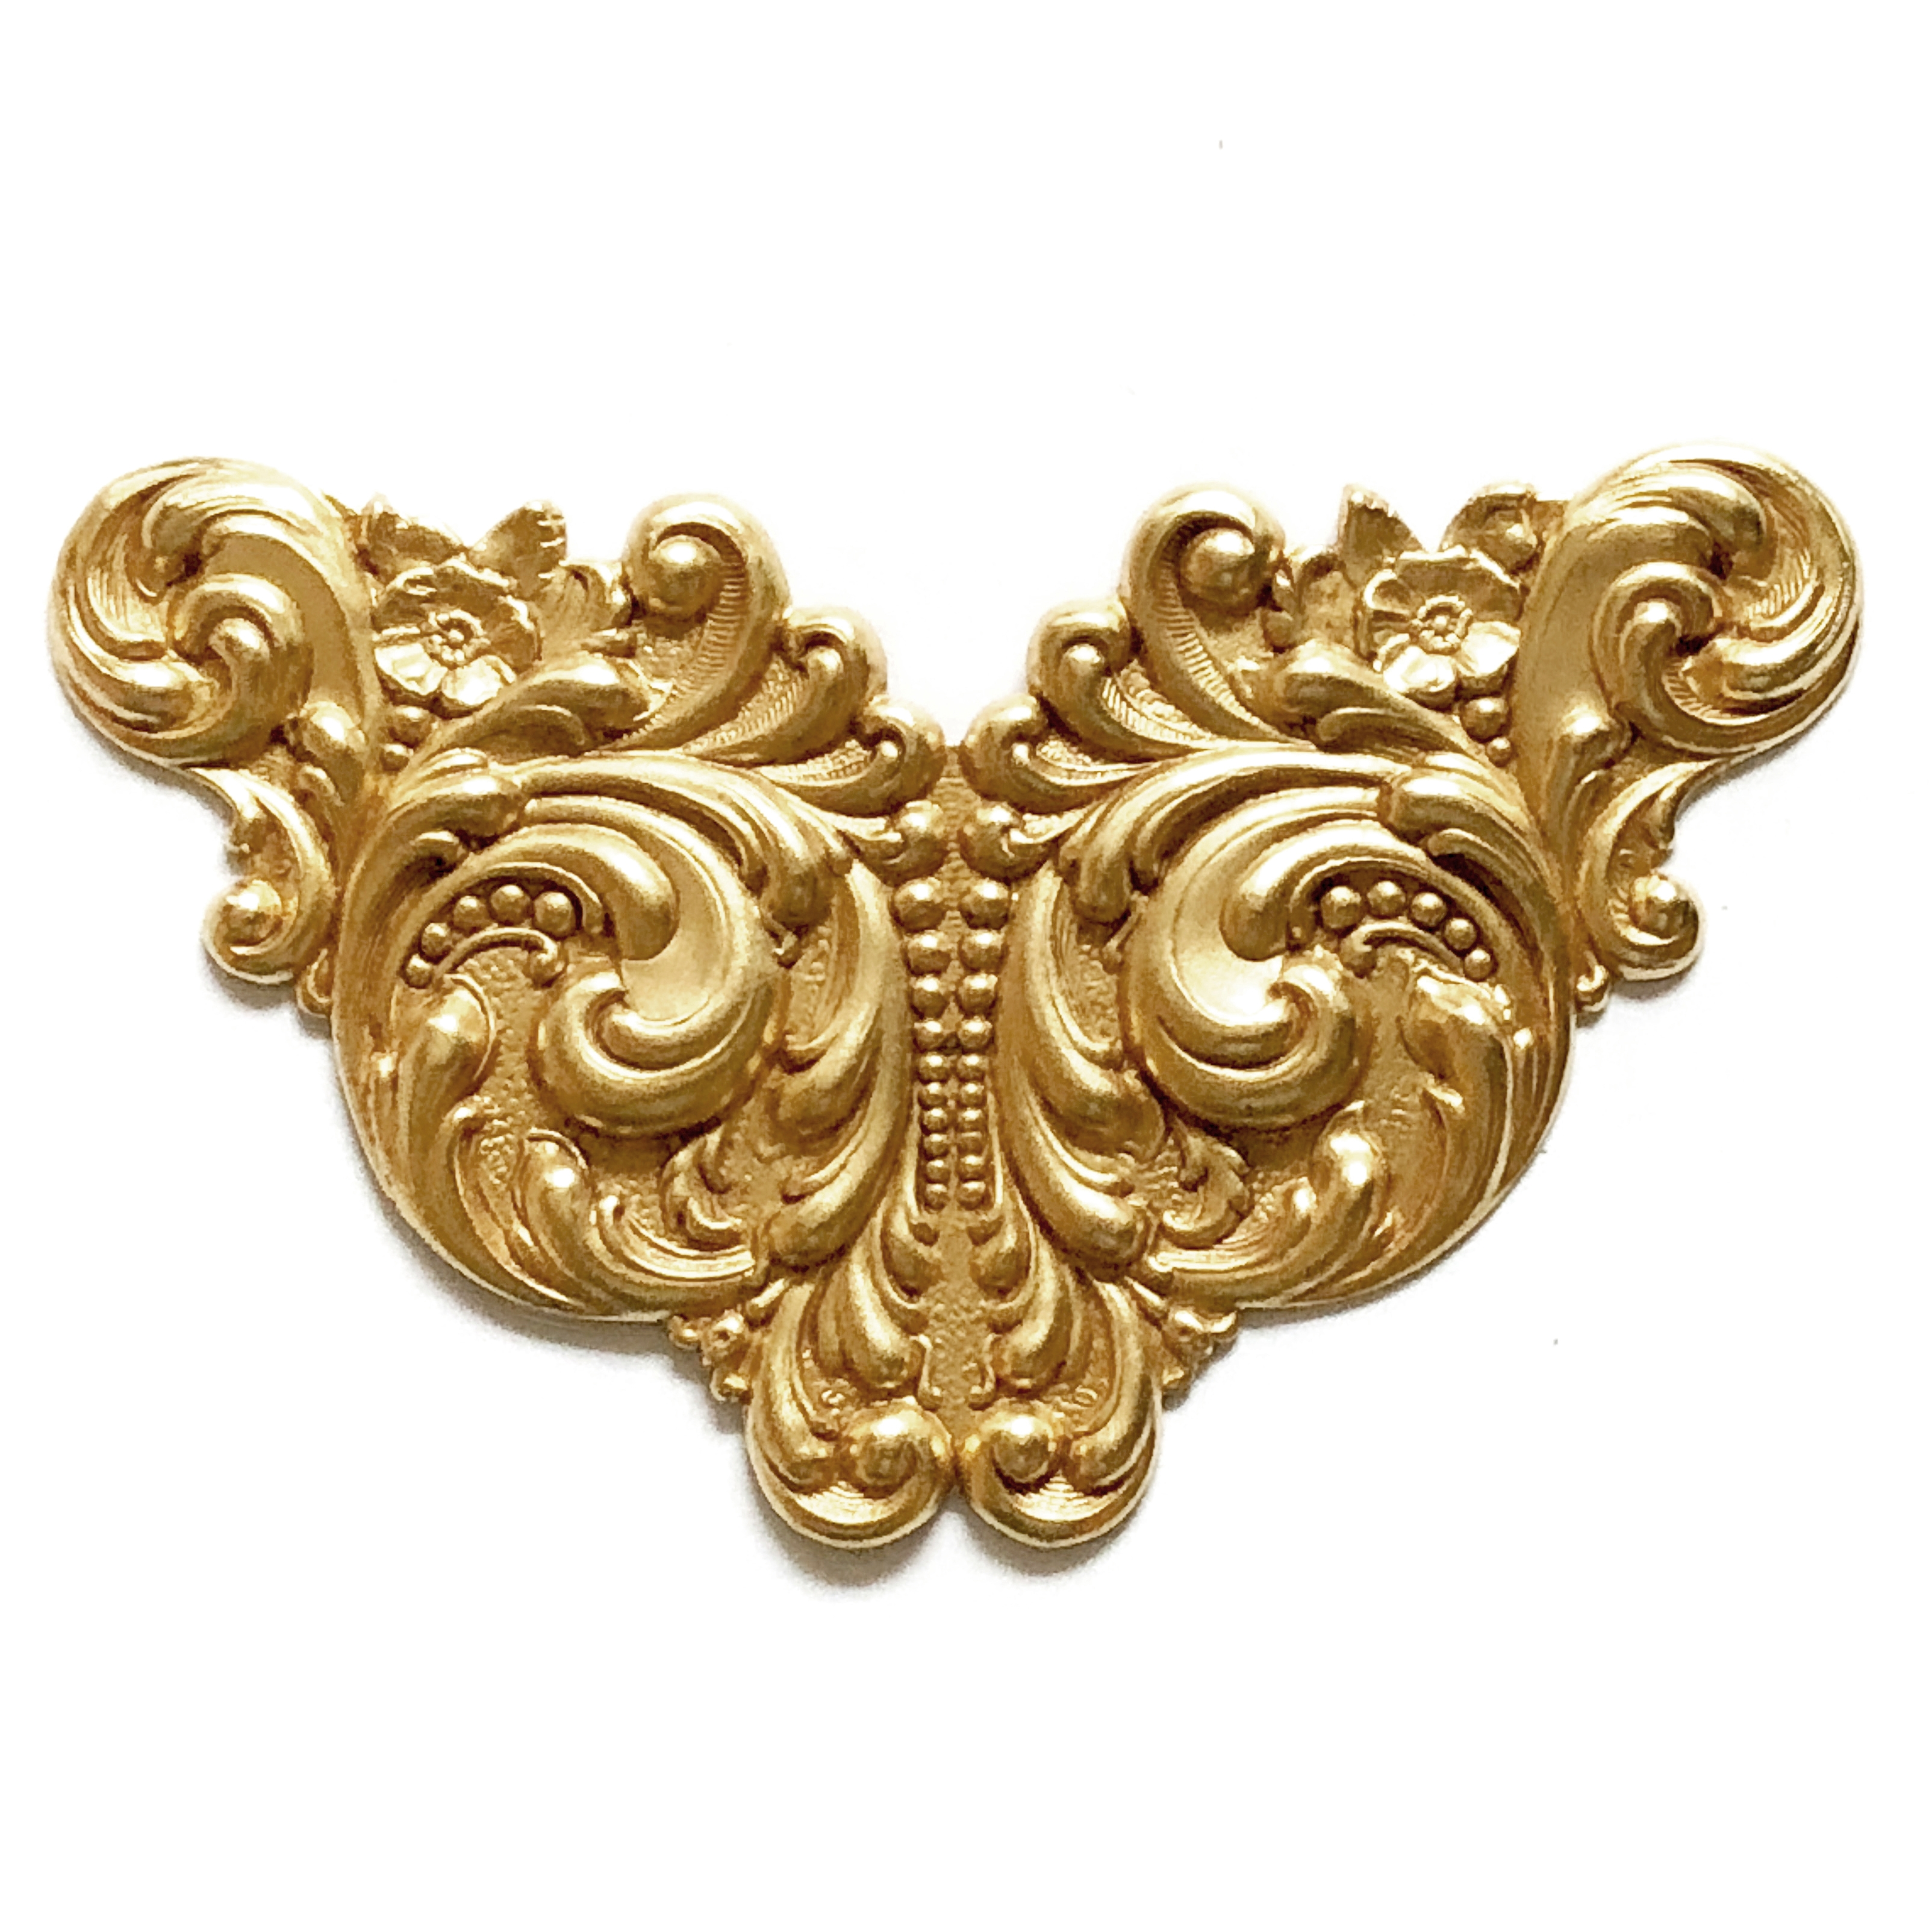 winged centerpiece, classic gold, 08462, antique gold, cinnamon accenting,  plaque, centerpiece, focal, jewelry supplies, Bsue Boutiques, US made, nickel free, Steampunk art,